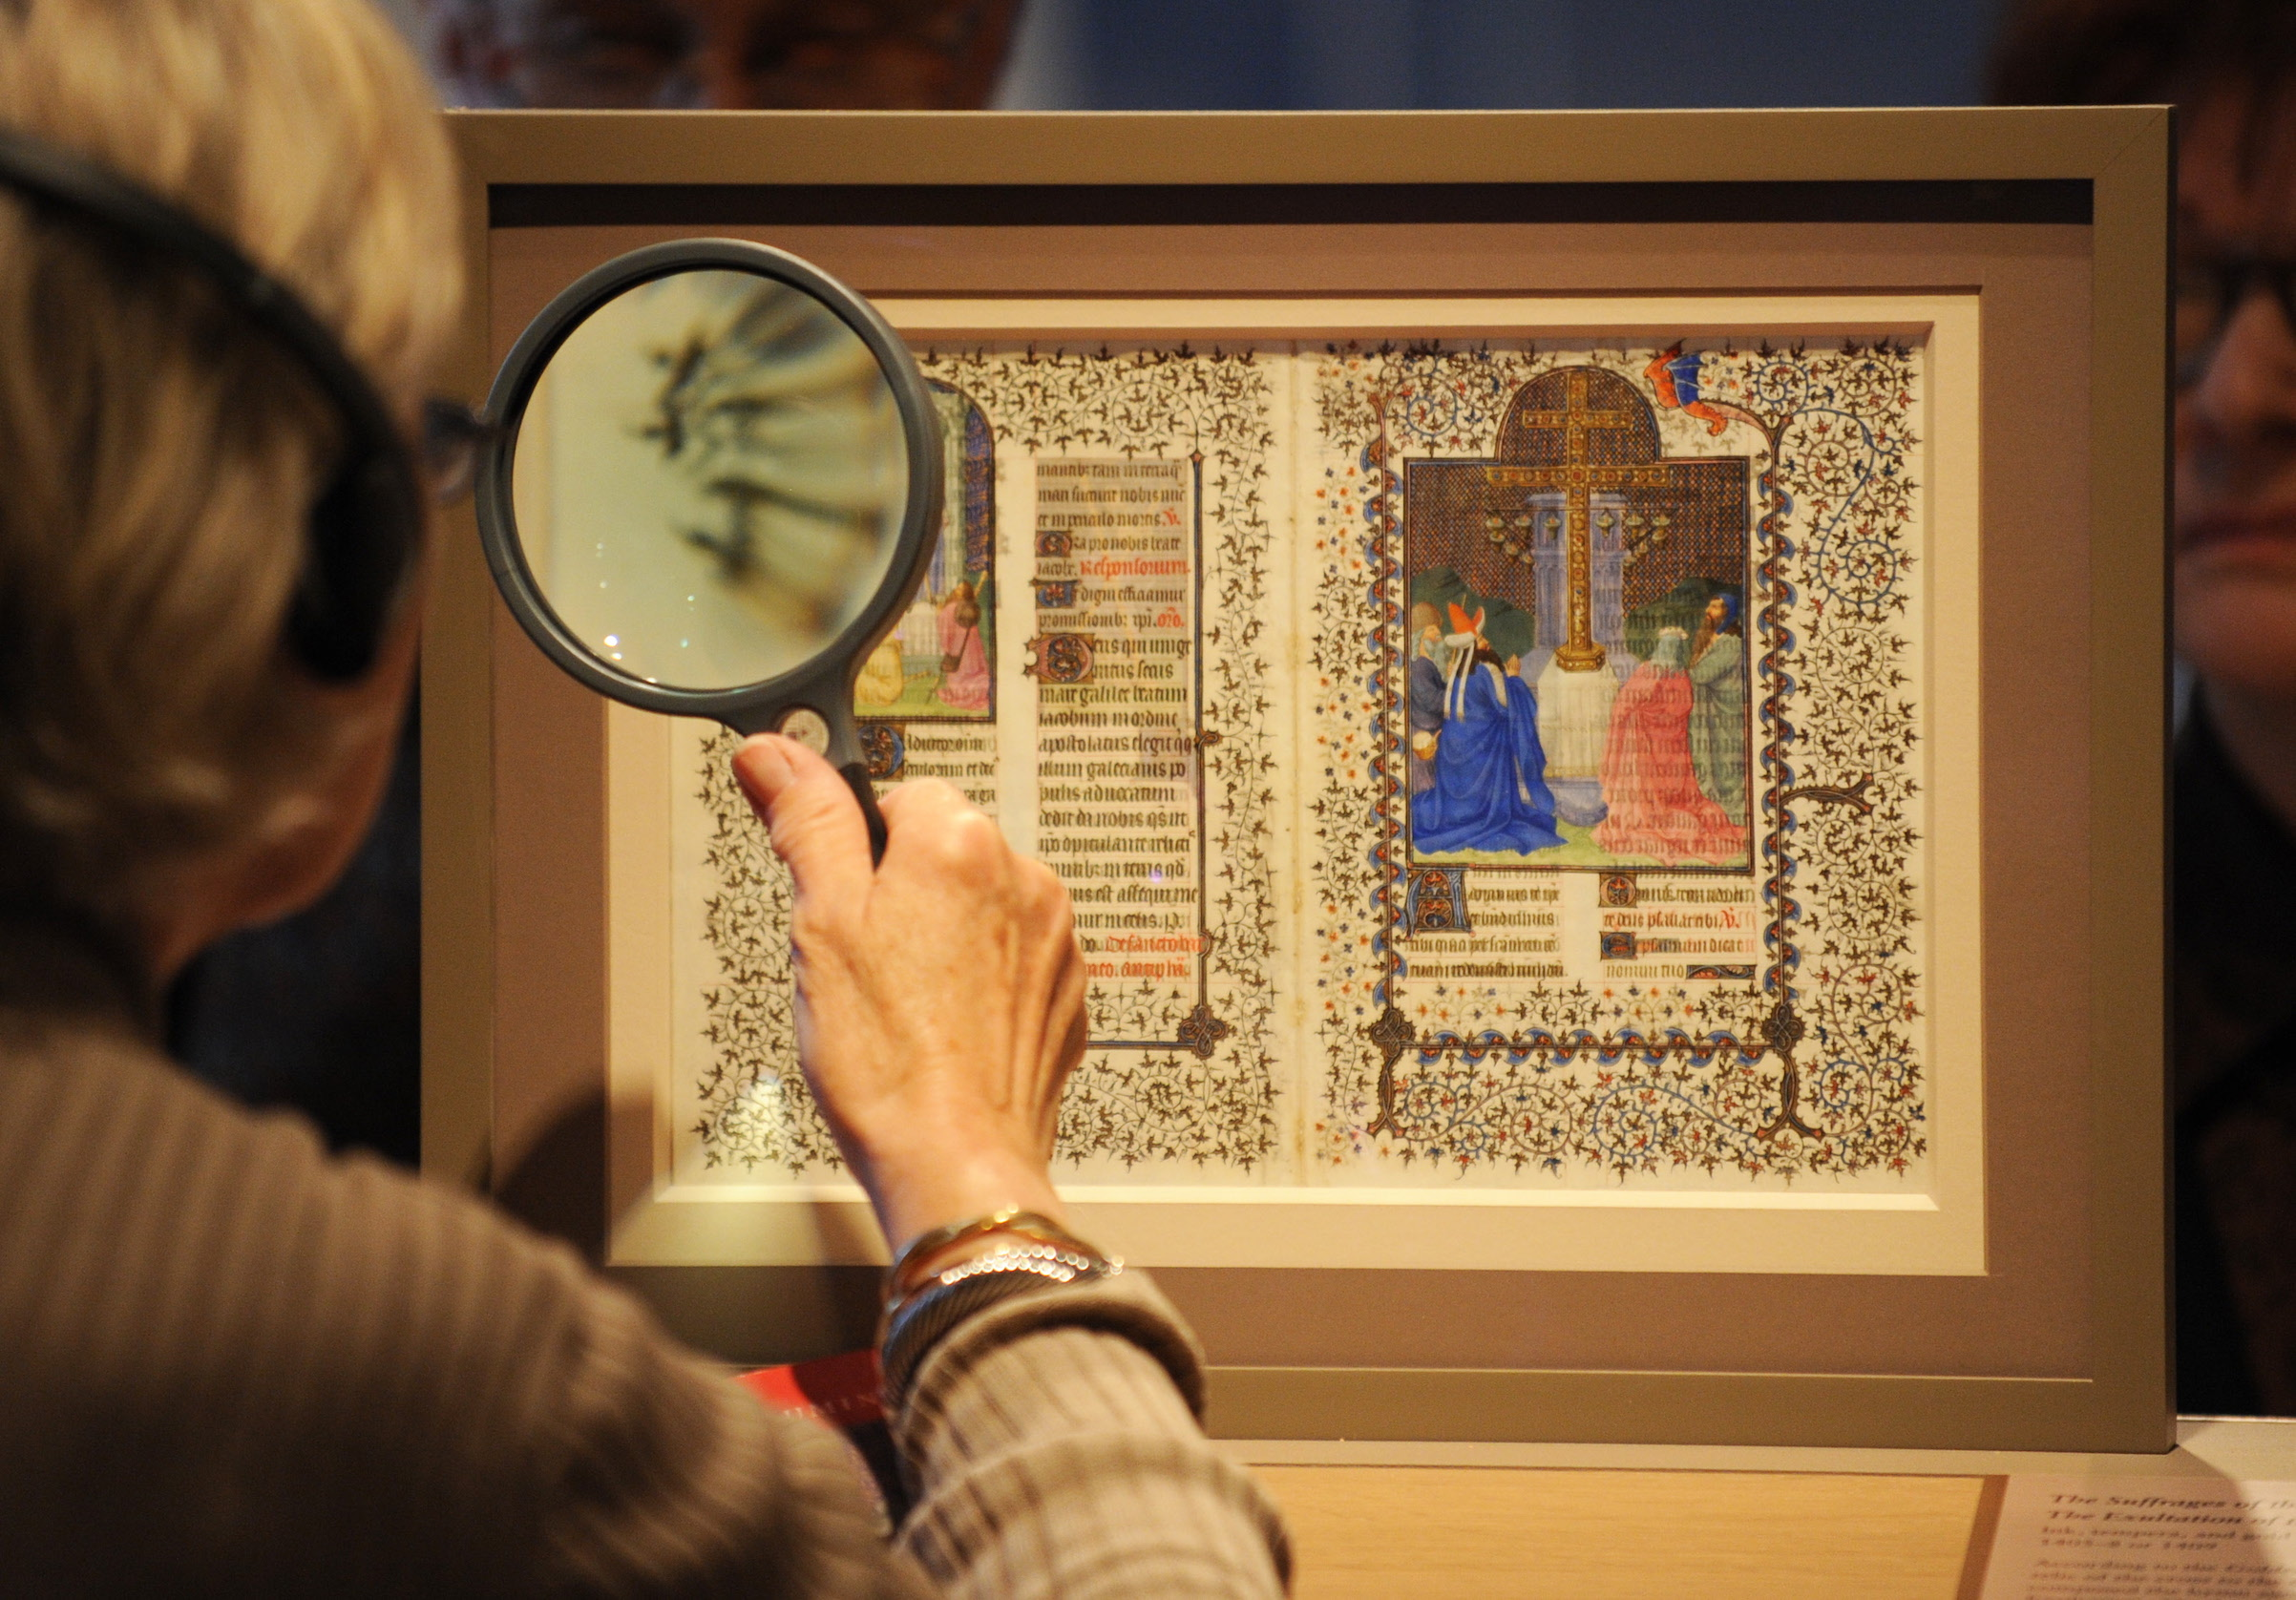 A woman uses a magnifying glass to view pages from a medieval prayer book known as the Belles Heures, on in 2010 at the Metropolitan Museum of Art in New York City.